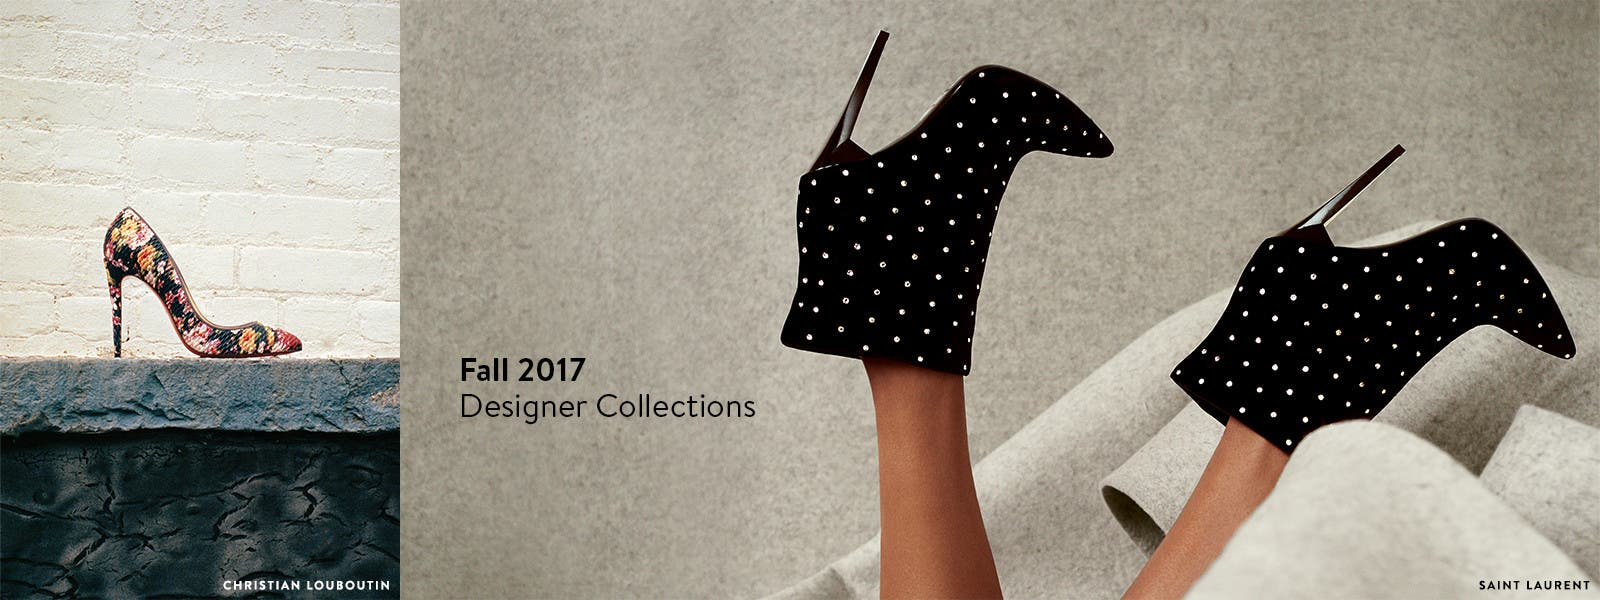 Fall 2017 designer collections for women, including shoes from Christian Louboutin and Saint Laurent.